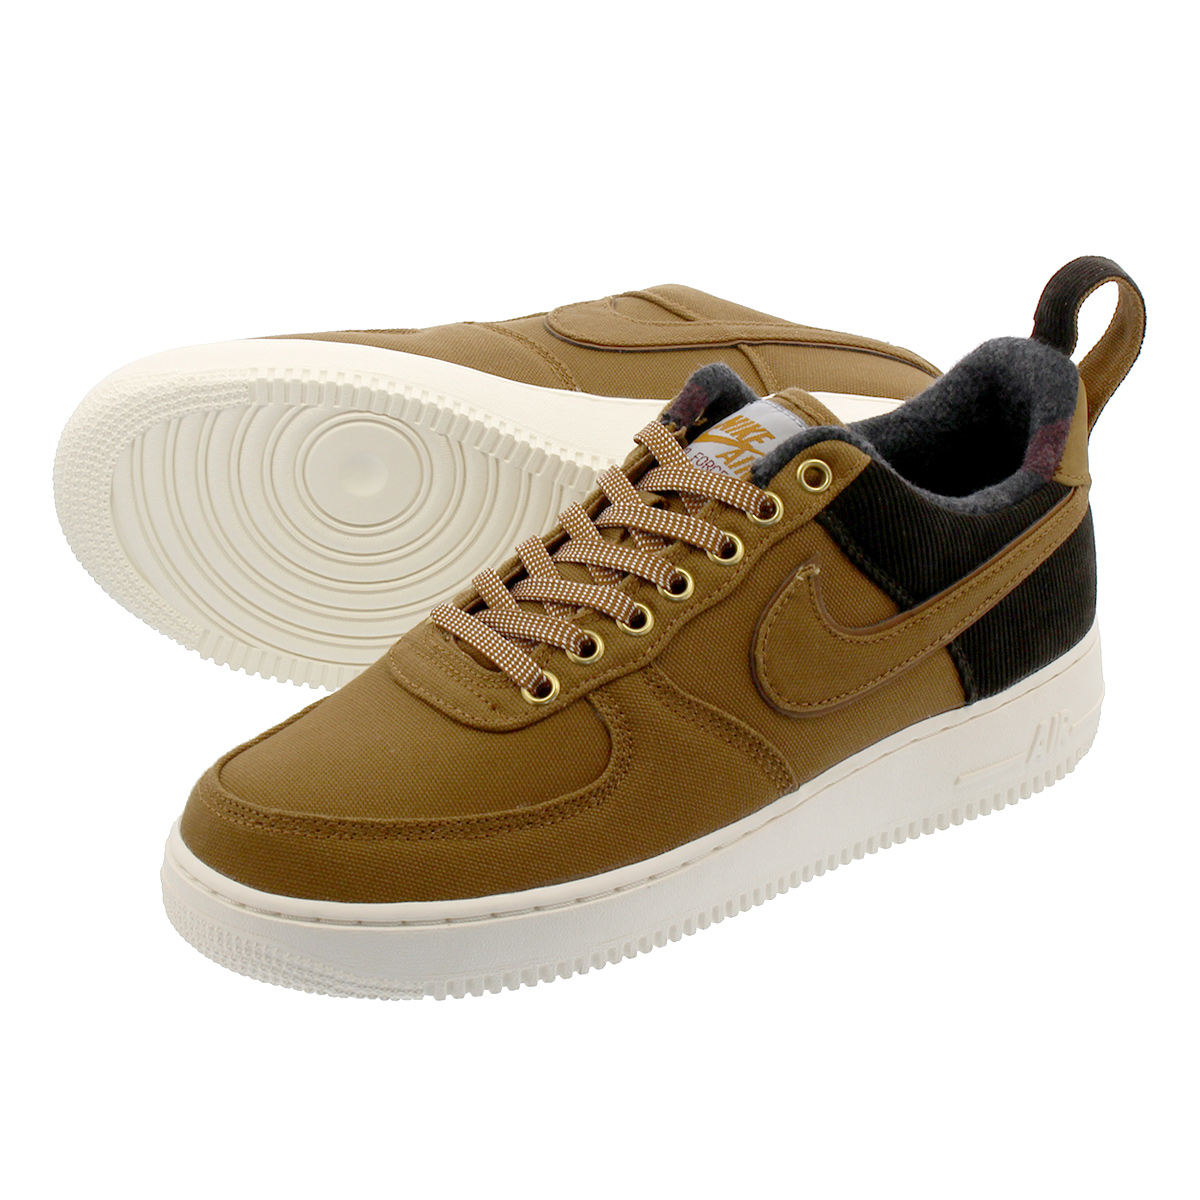 separation shoes b4040 17371 NIKE AIR FORCE 1  07 PRM Nike air force 1  07 LV8 premium car heart ALE  BROWN ALE BROWN SAIL av4113-200